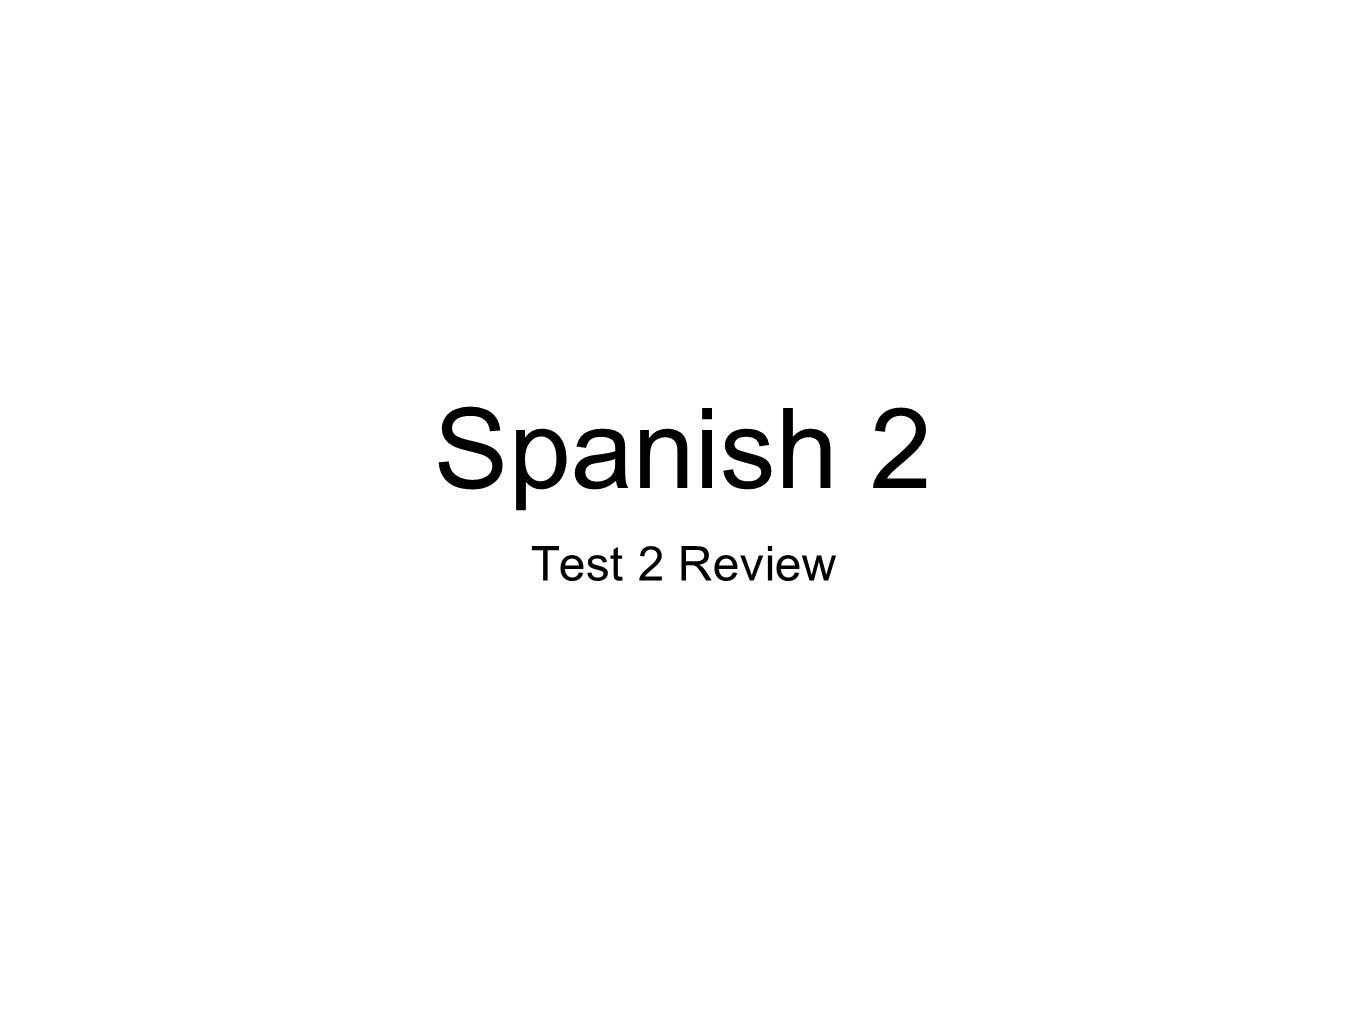 Spanish 2 Test 2 Review